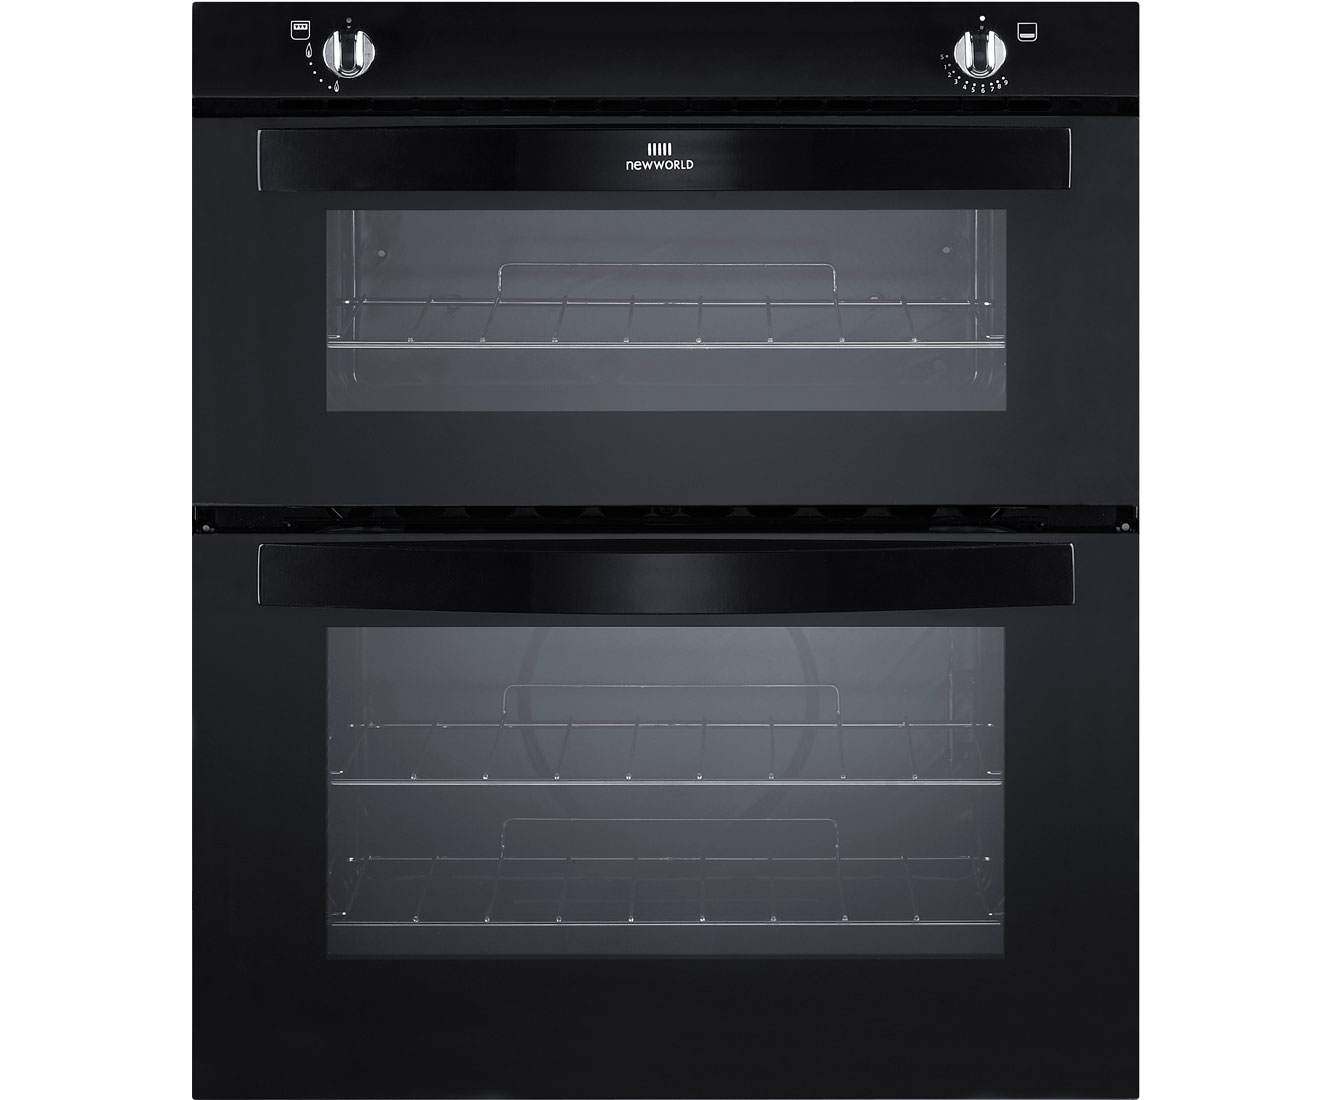 Newworld NW701G Built Under Gas Twin Cavity Single Oven - Black